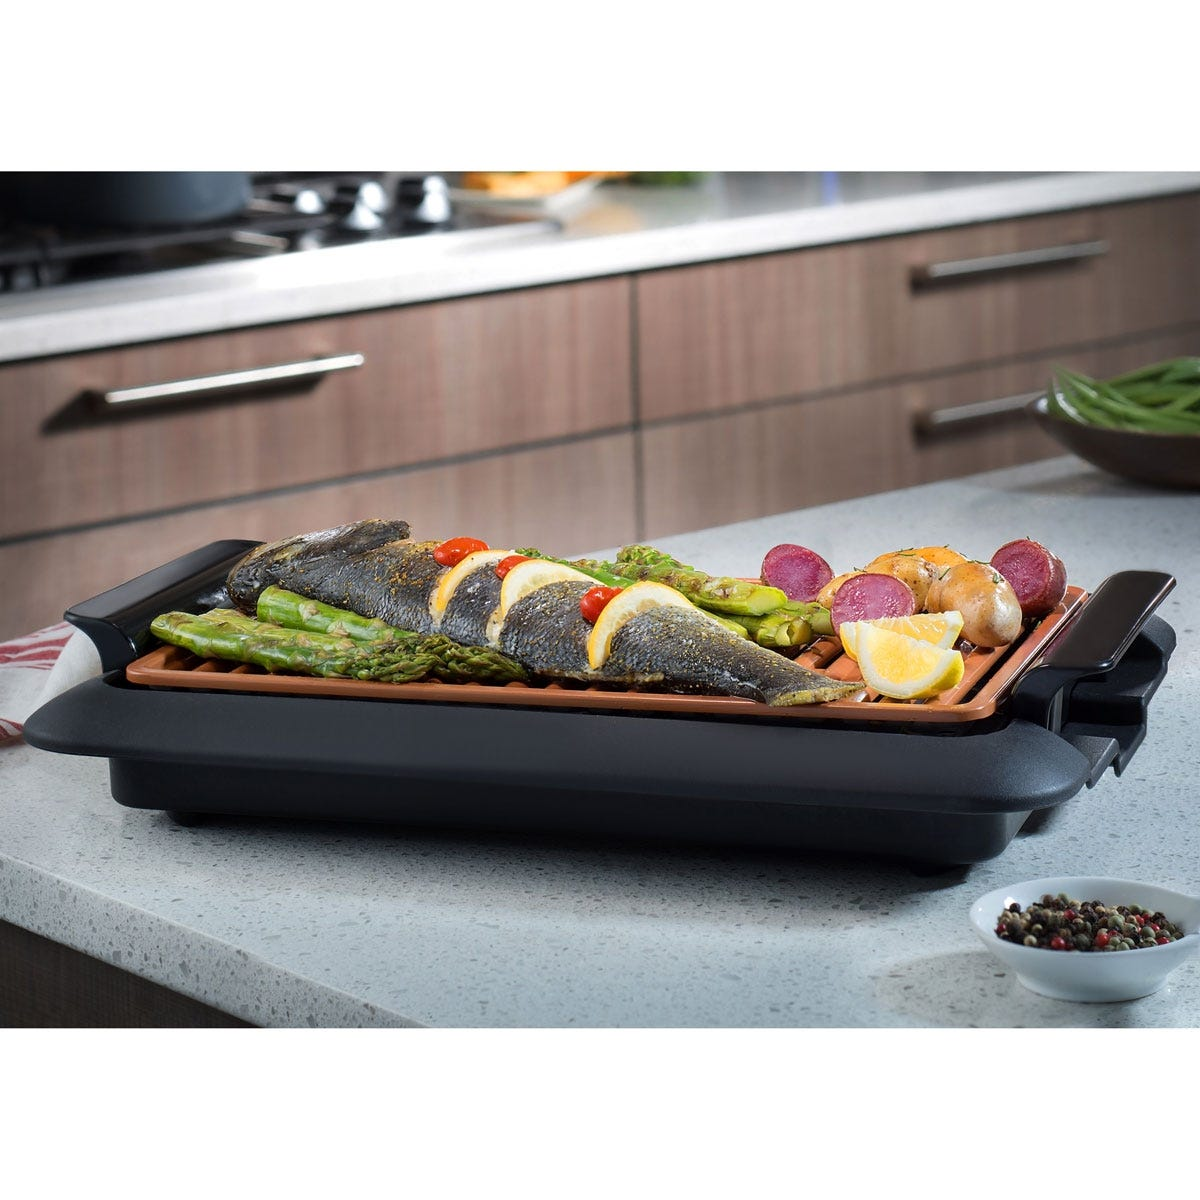 Gotham Steel Smokeless Indoor Grill From Sporty S Tool Shop